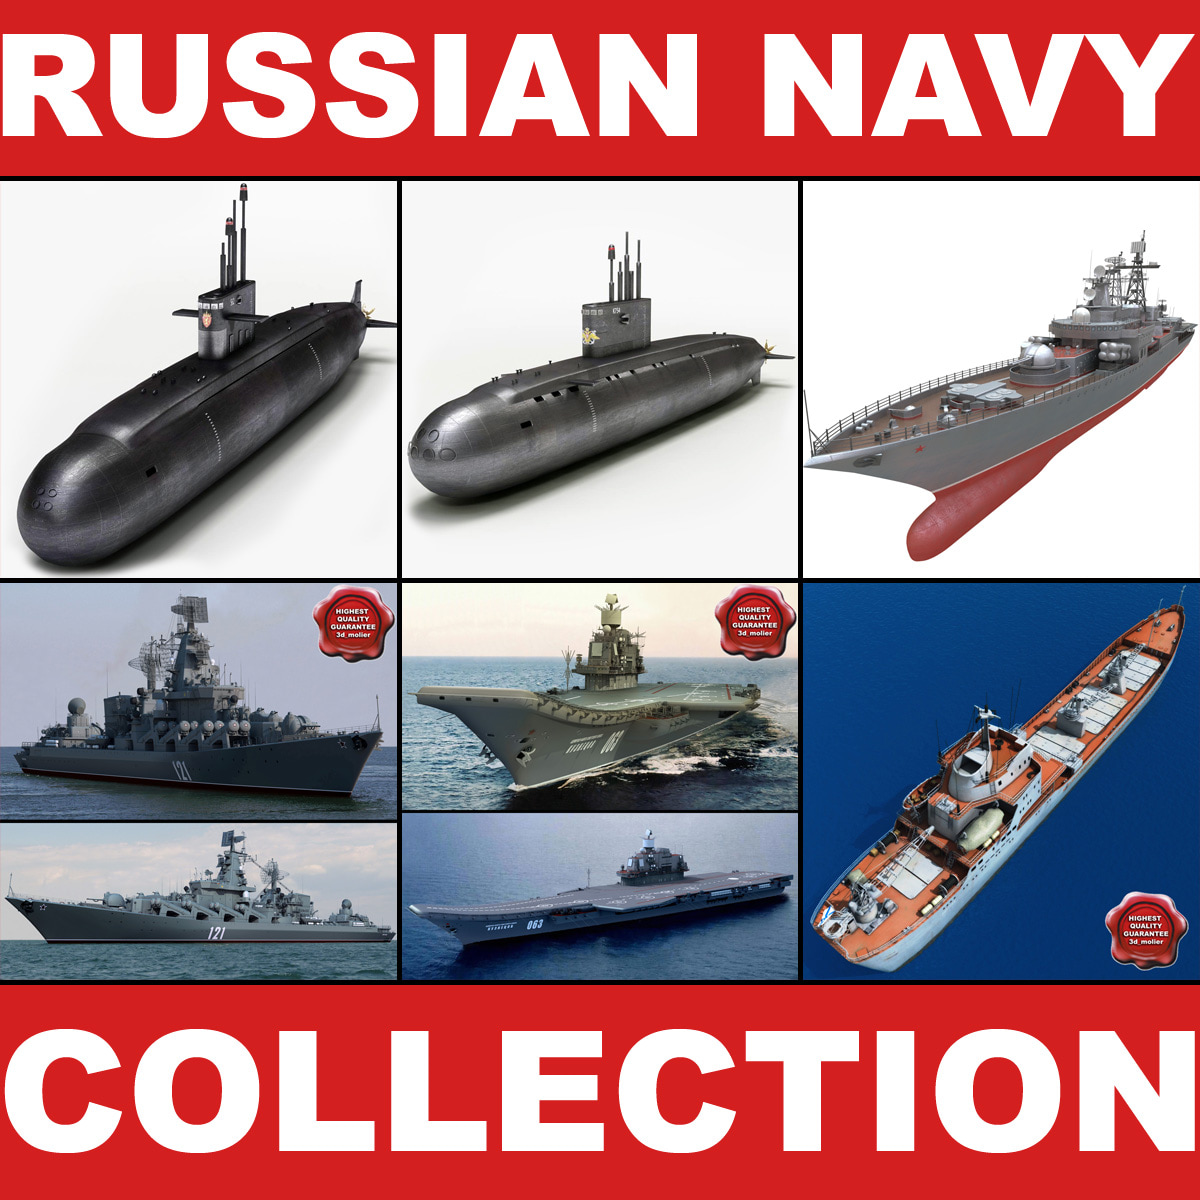 Russian_Navy_Collection_V2_000.jpg